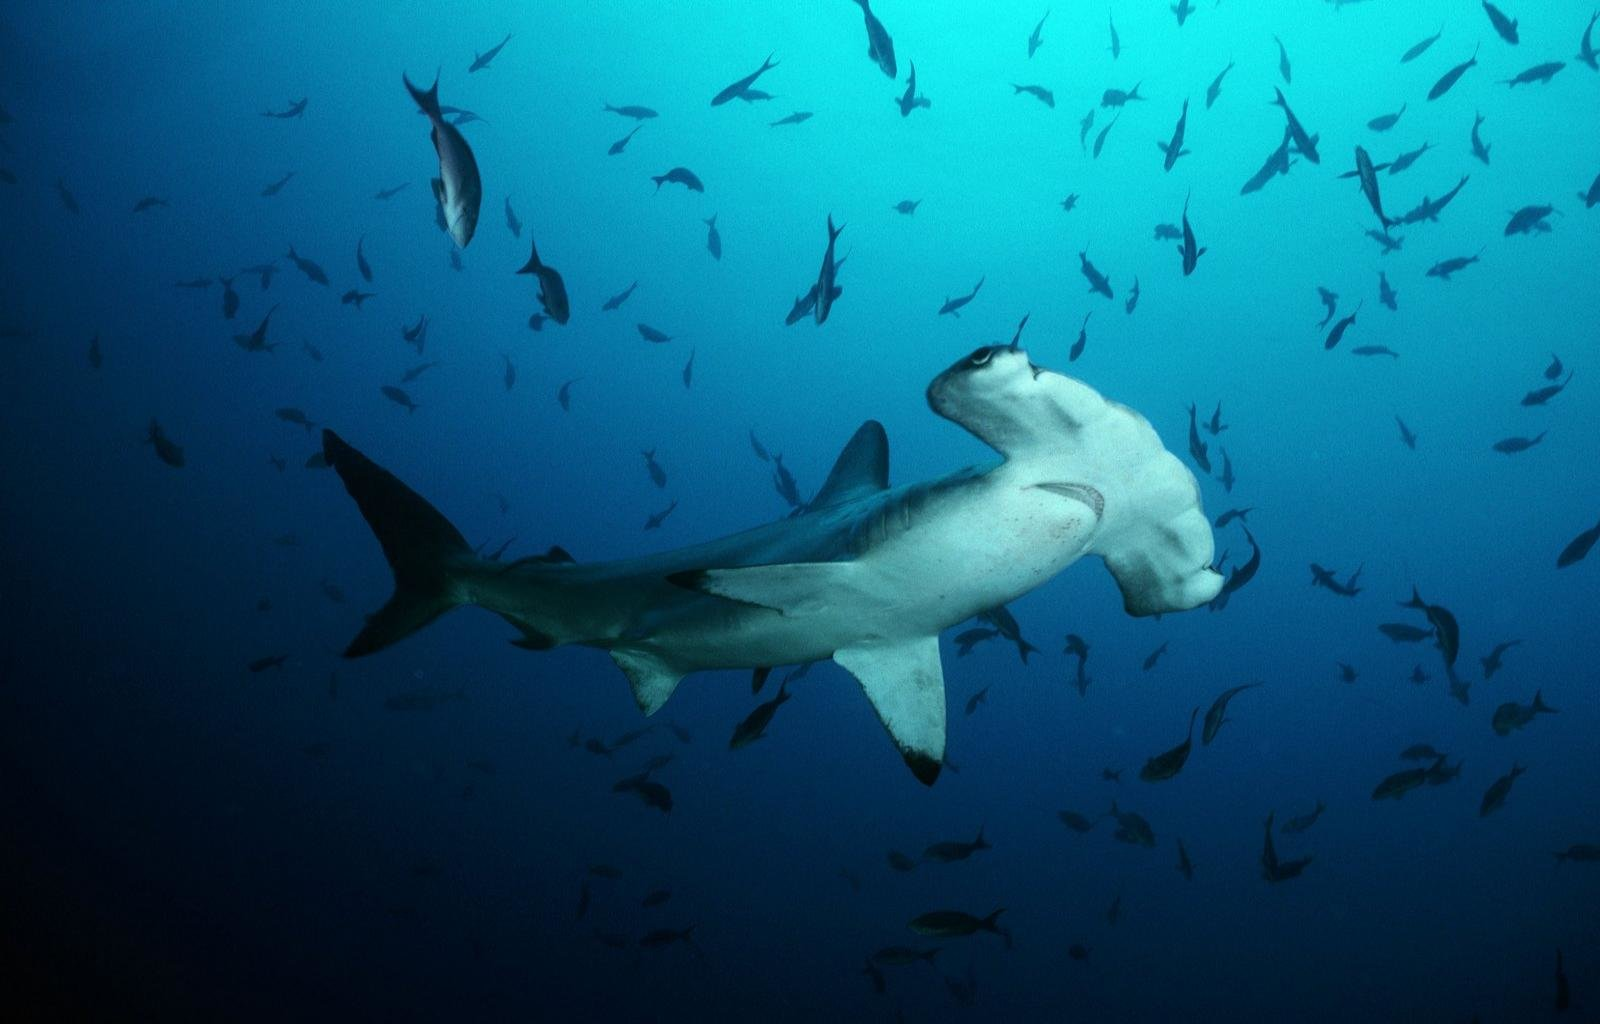 Download hd 1600x1024 Hammerhead Shark PC background ID:469900 for free